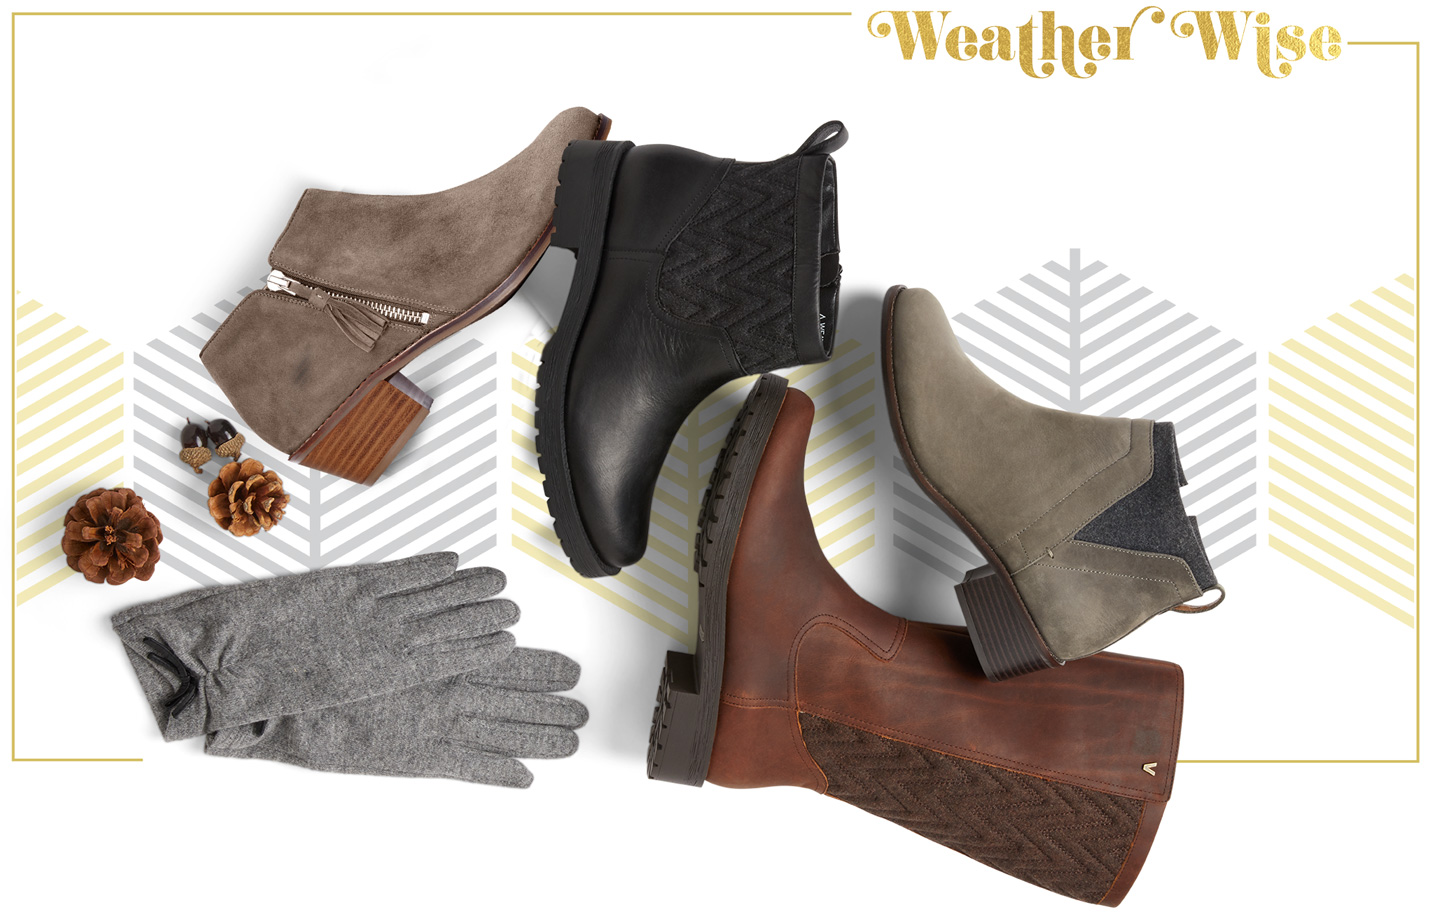 Weather Wise women's shoes and slippers